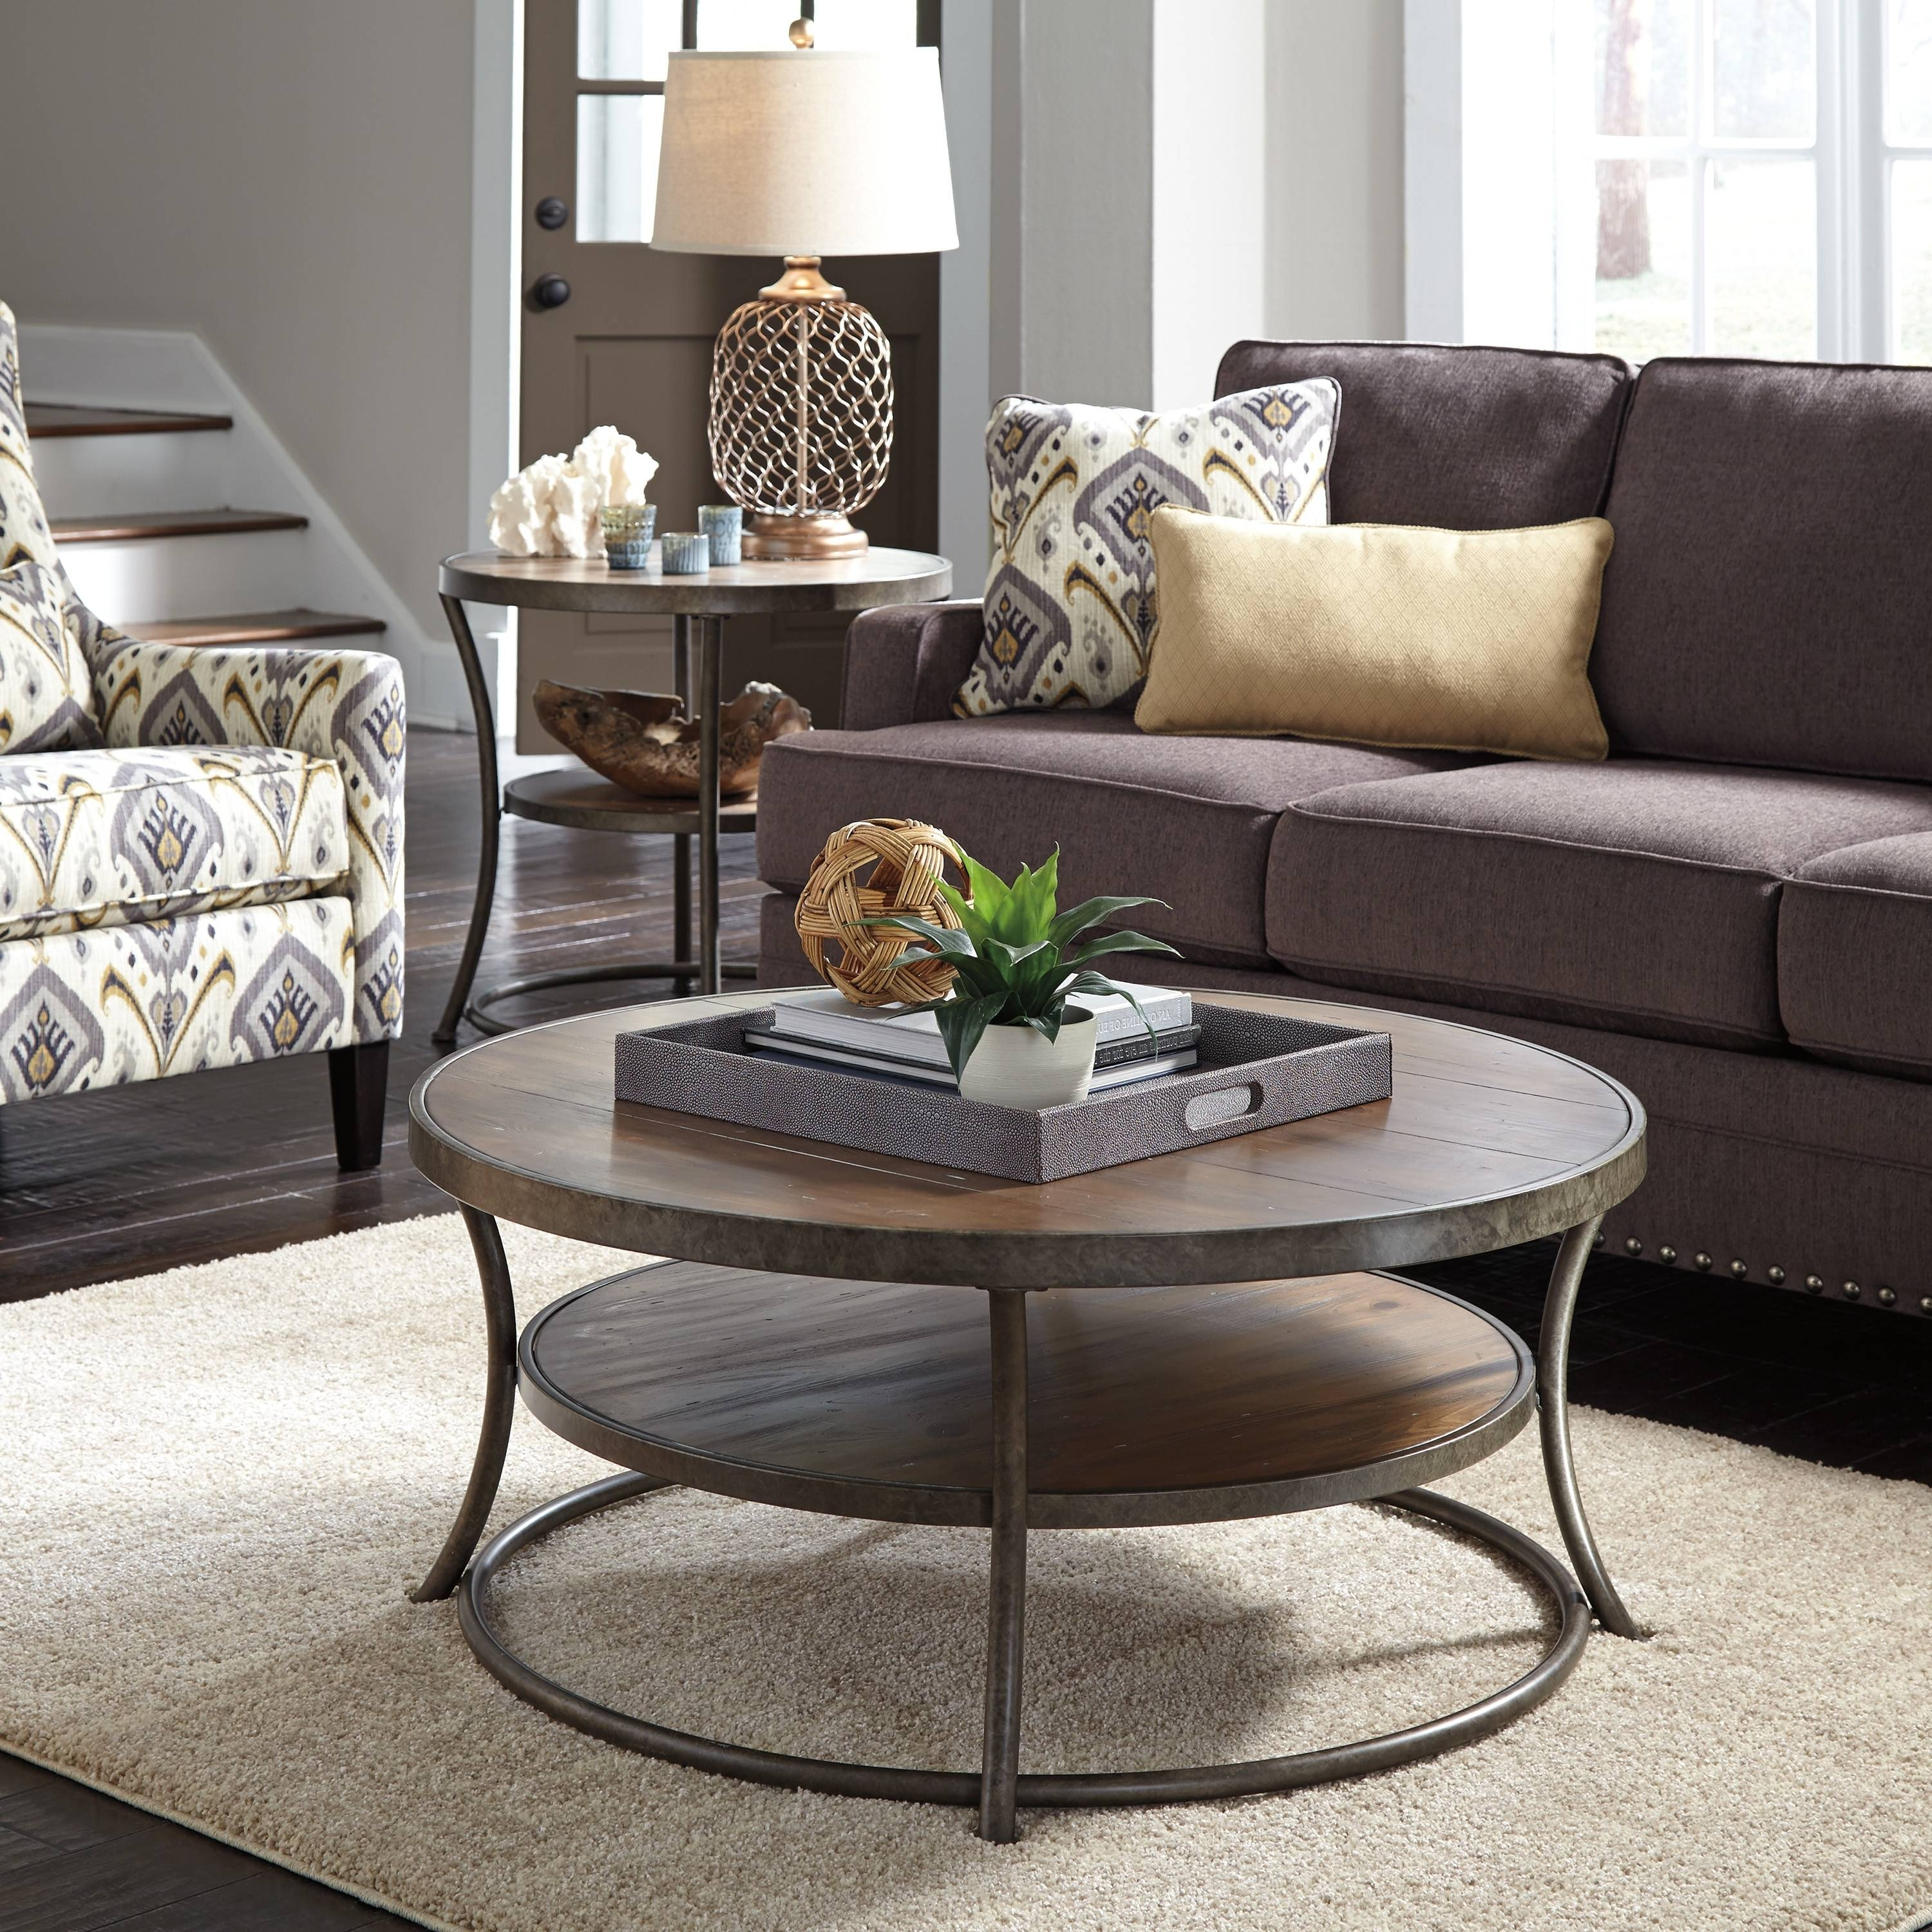 Coffee Table : Wayfair Glass Coffee Table Pertaining To Wonderful within Wayfair Coffee Table Sets (Image 9 of 30)